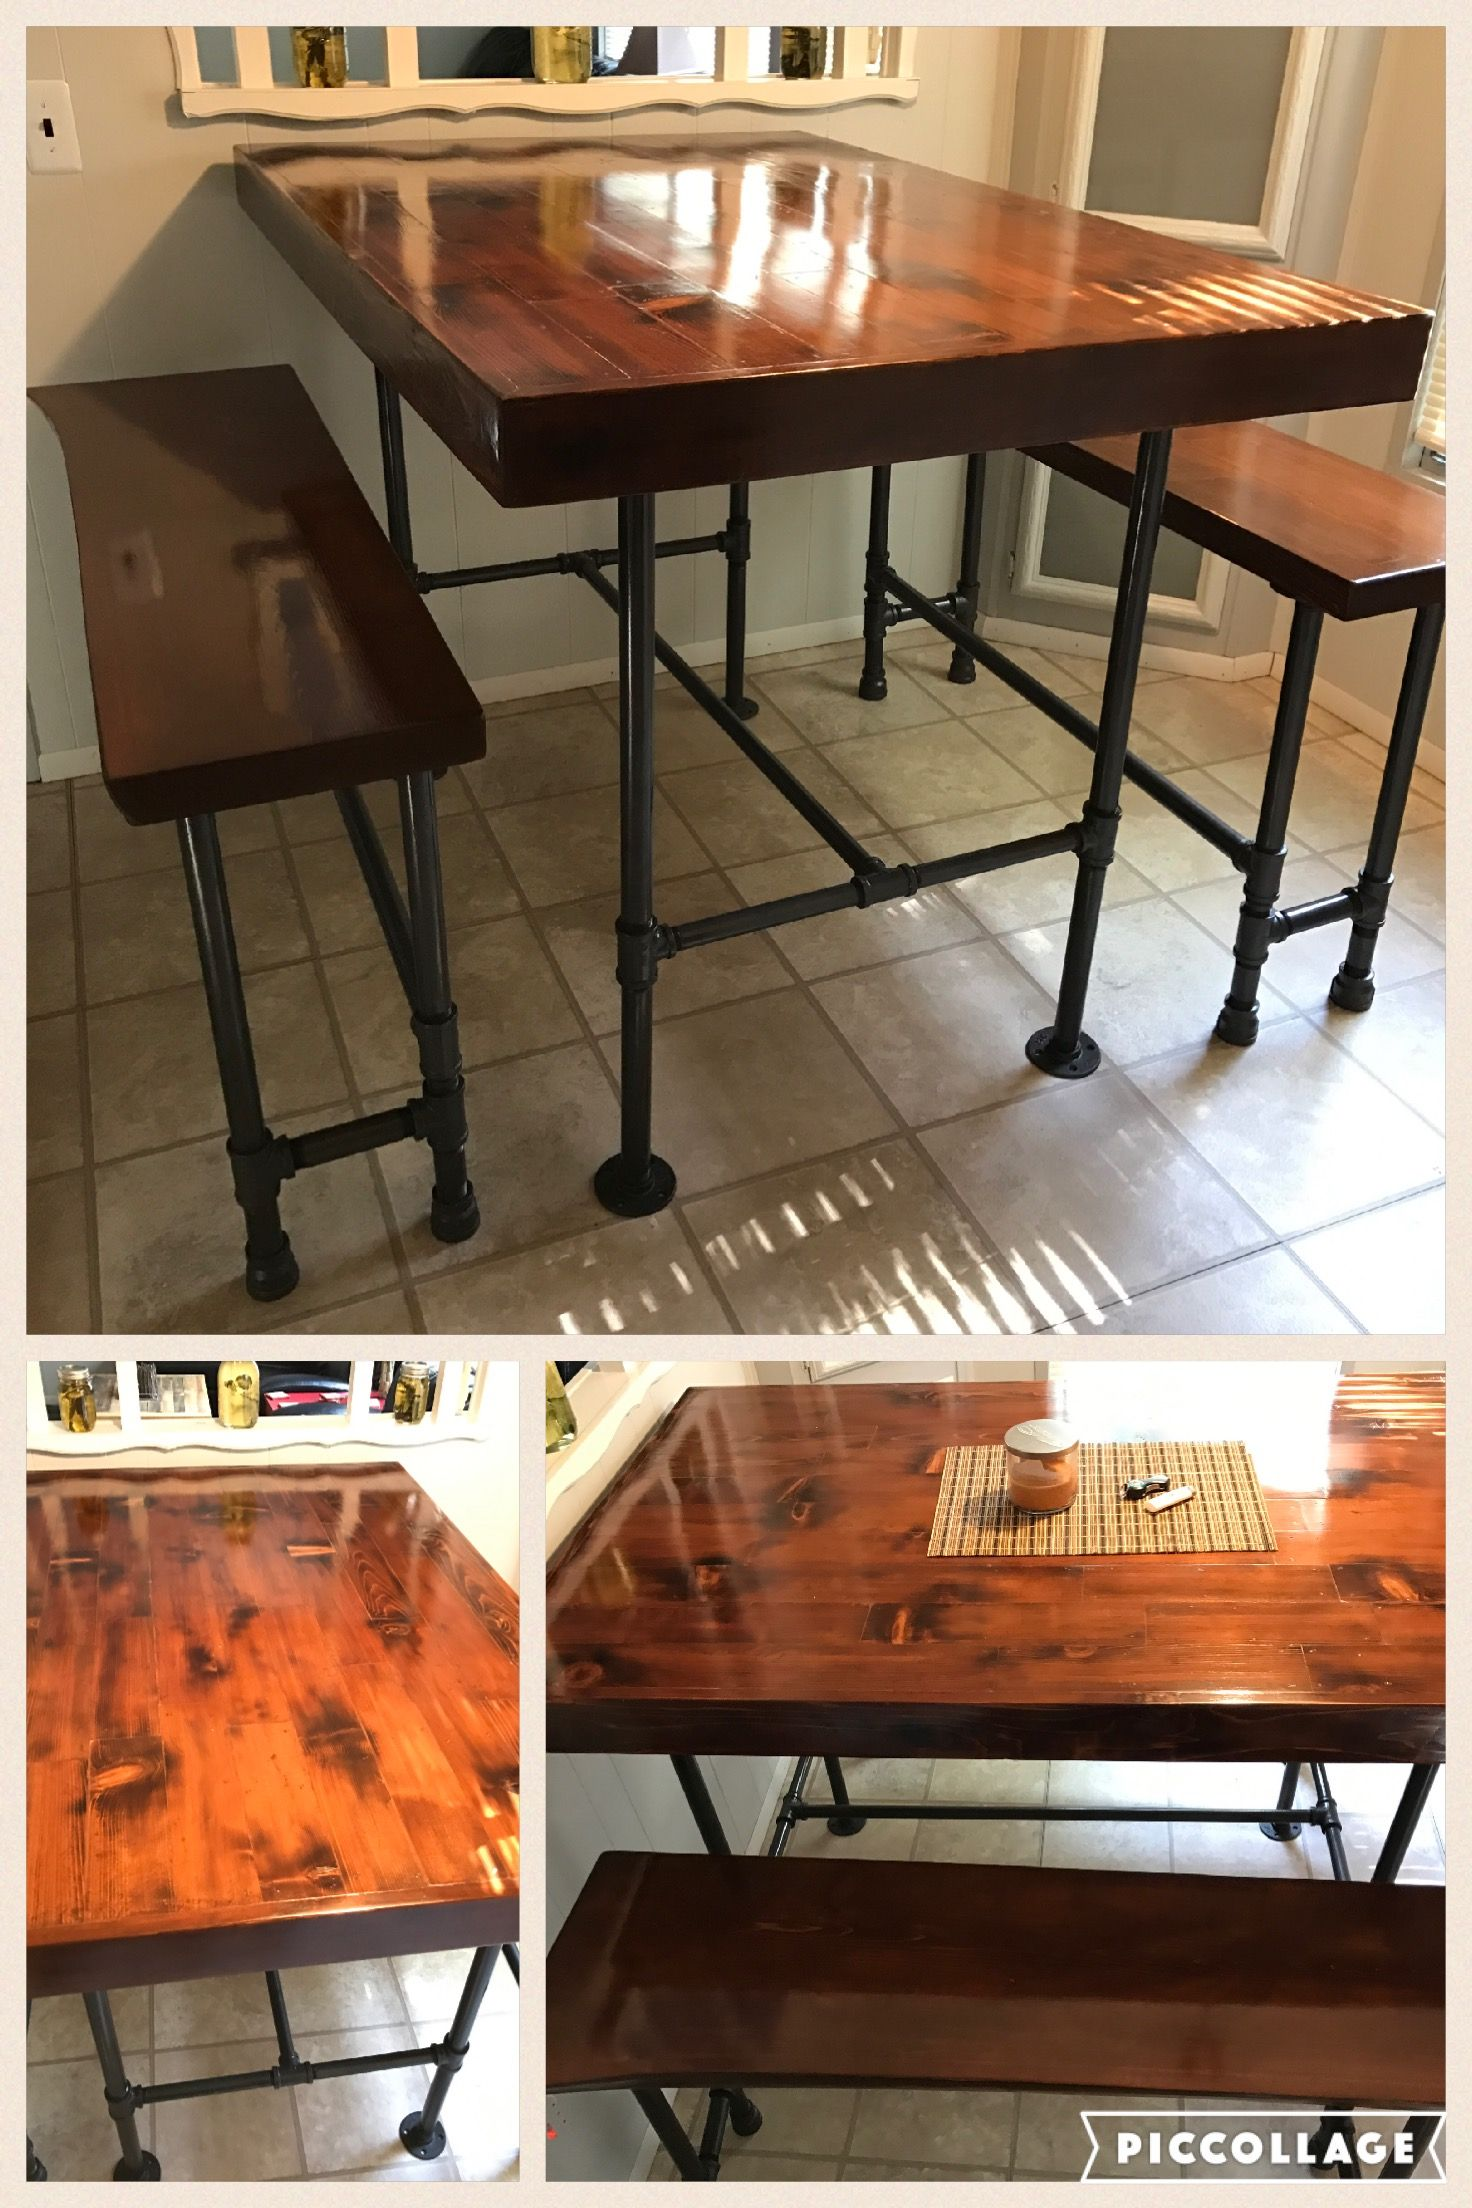 it back ends from top fellowship metal wood a has and using high with home great give was project img base feels table the god dg talent community furnishings reclaimed made to given